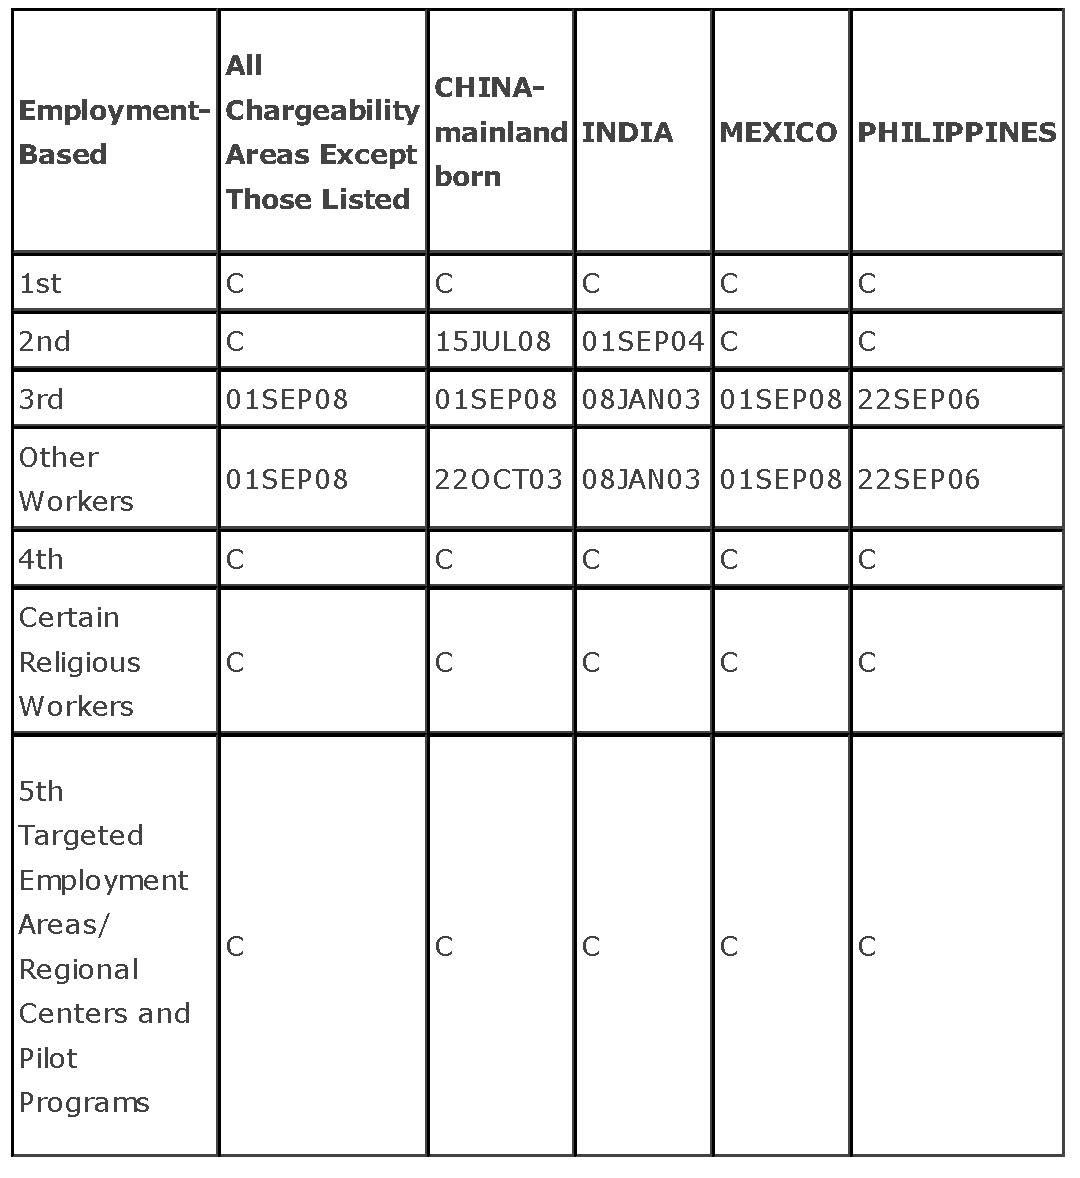 June 2013 Visa Bulletin, Employment-Based Categories